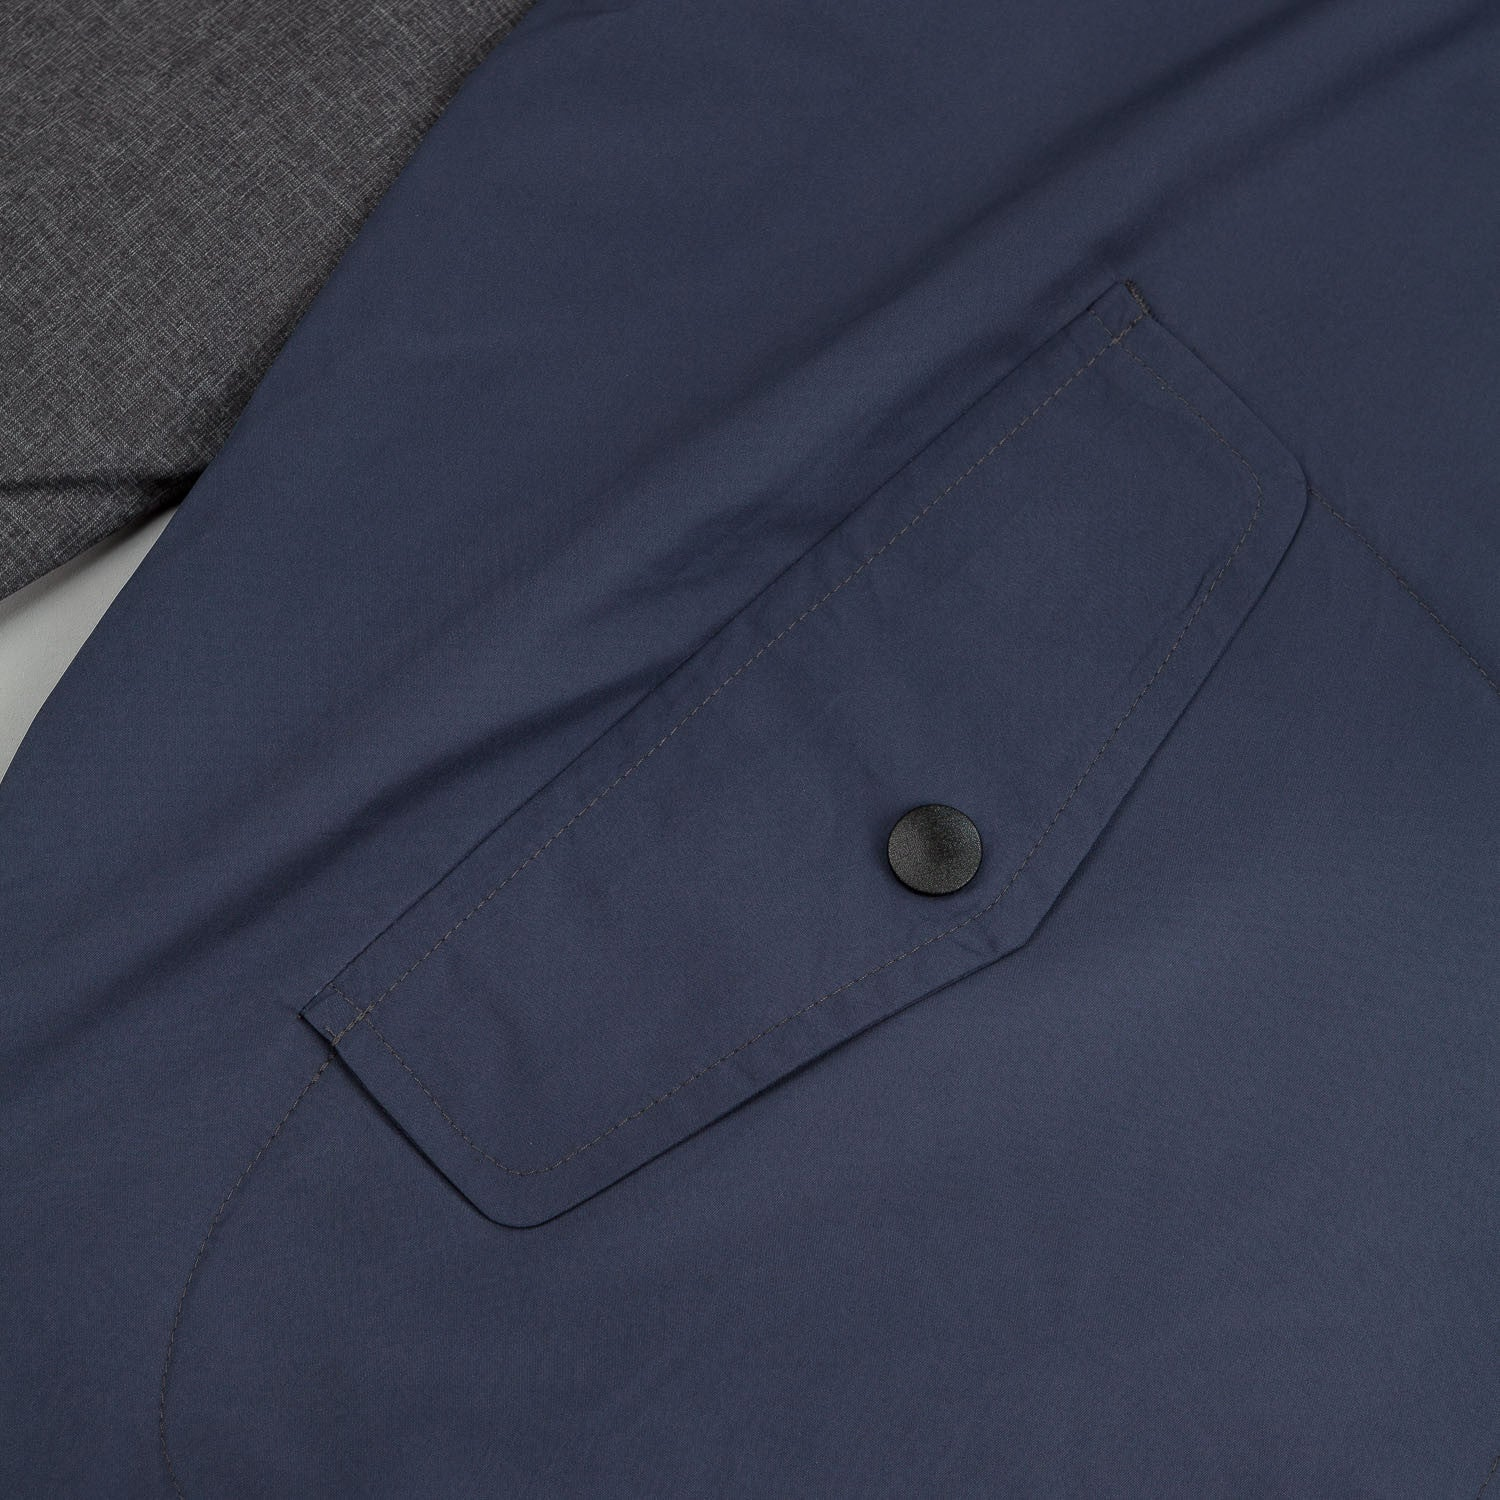 Carhartt Bluster Jacket - Black / Duke Blue